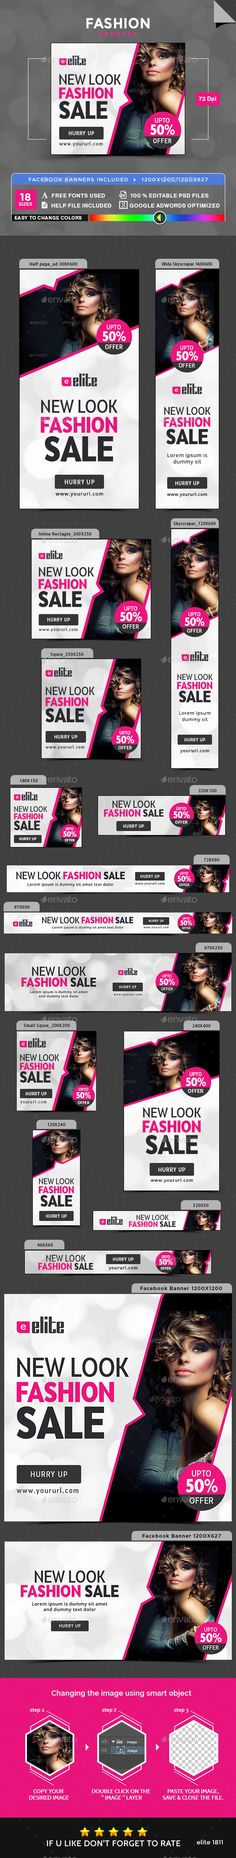 Fashion Banners — Photoshop PSD #coupon #business • Available here → https://graphicriver.net/item/fashion-banners/17907896?ref=pxcr